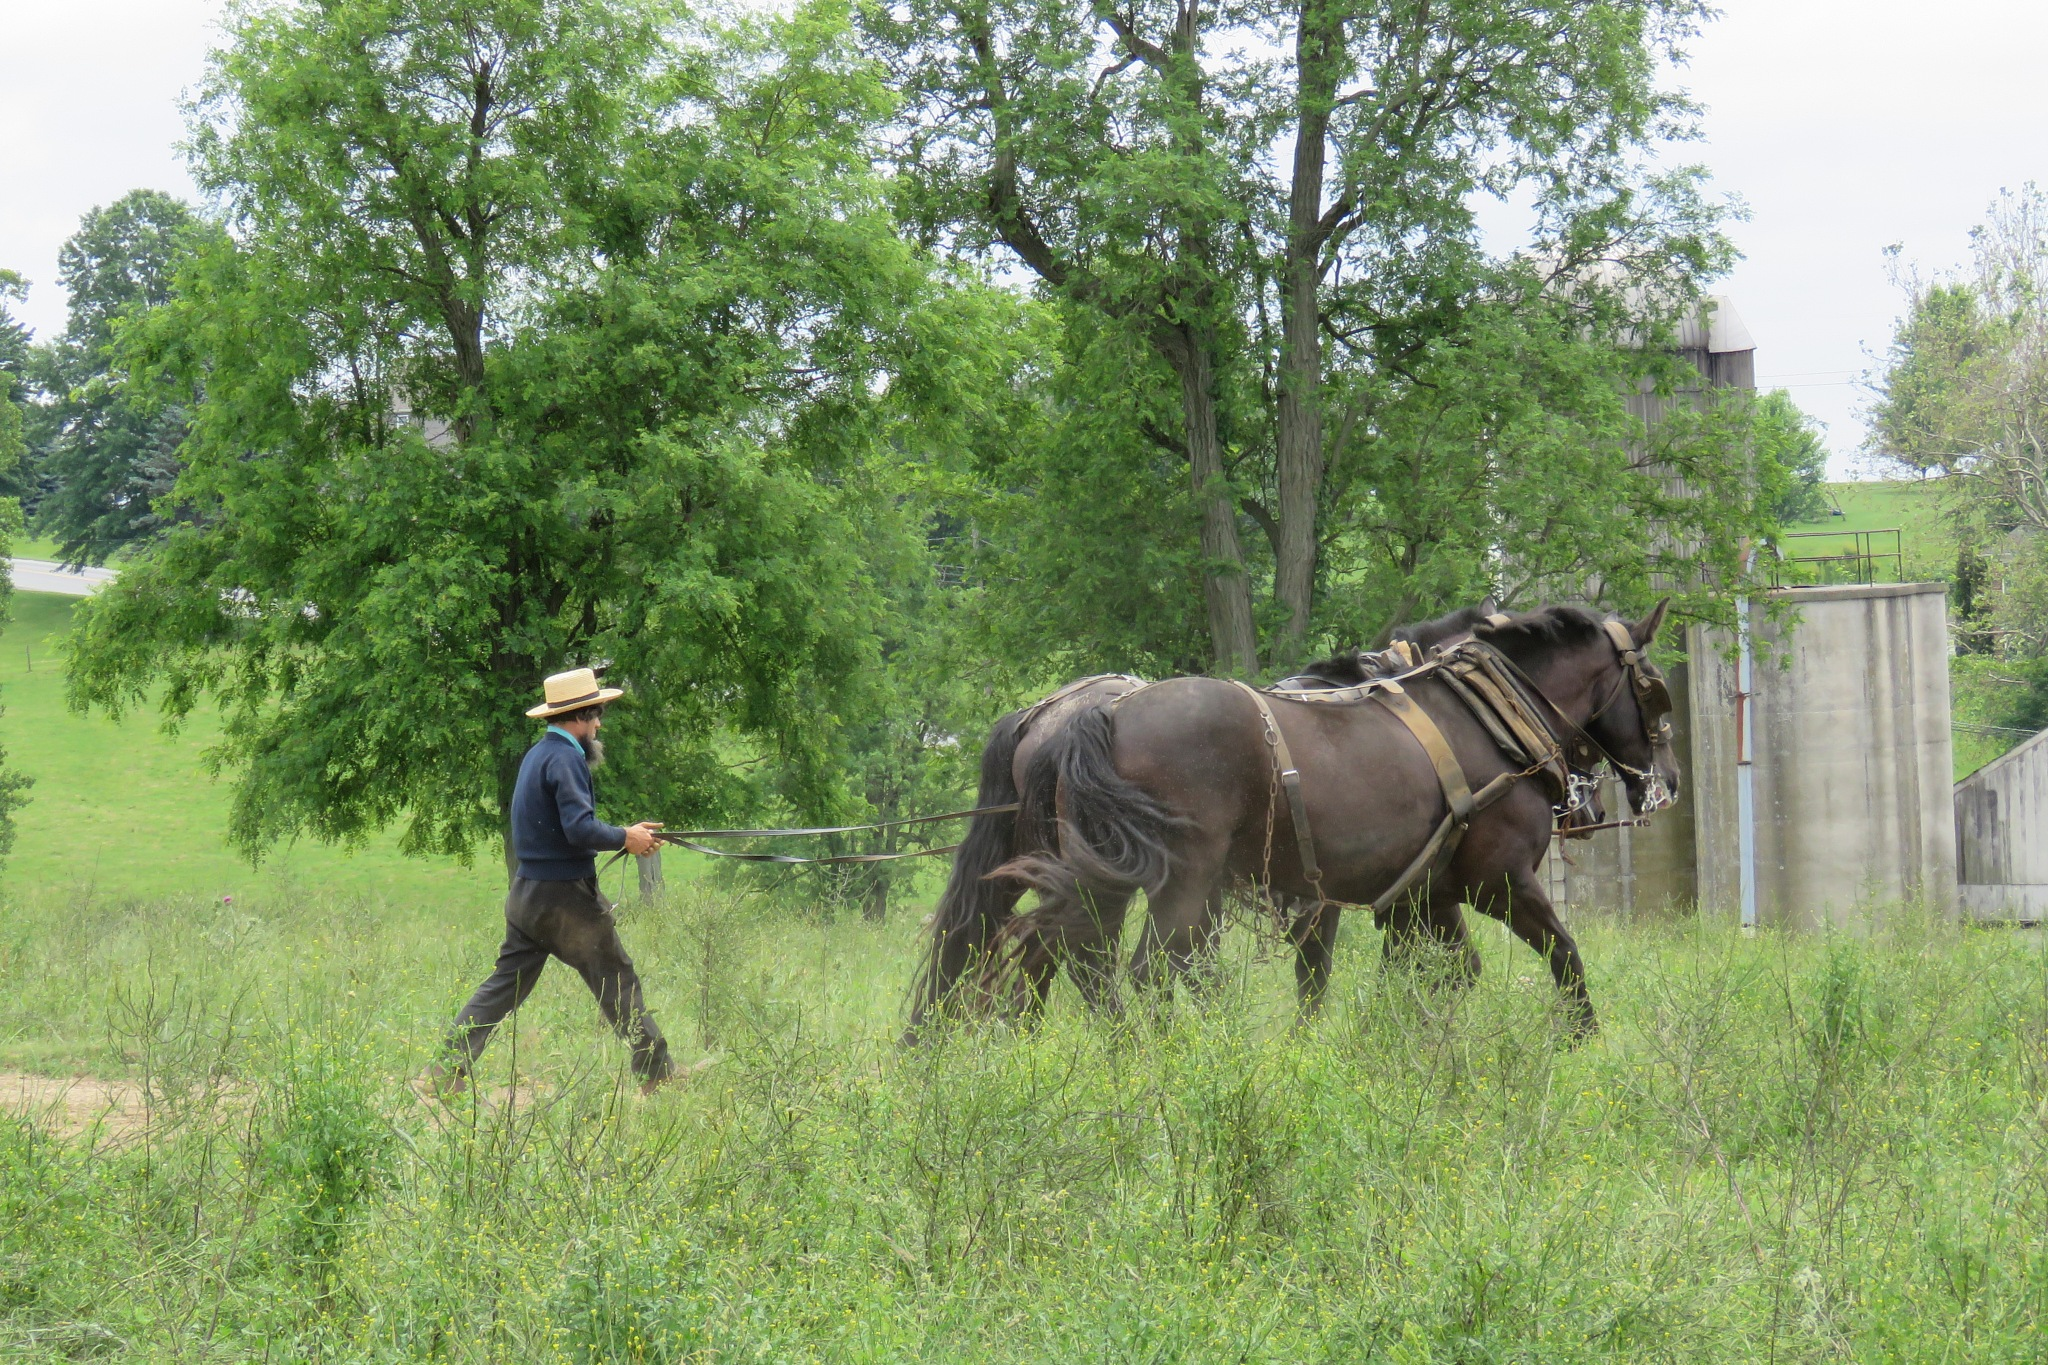 A Work day for the Amish by janet.fisher.503